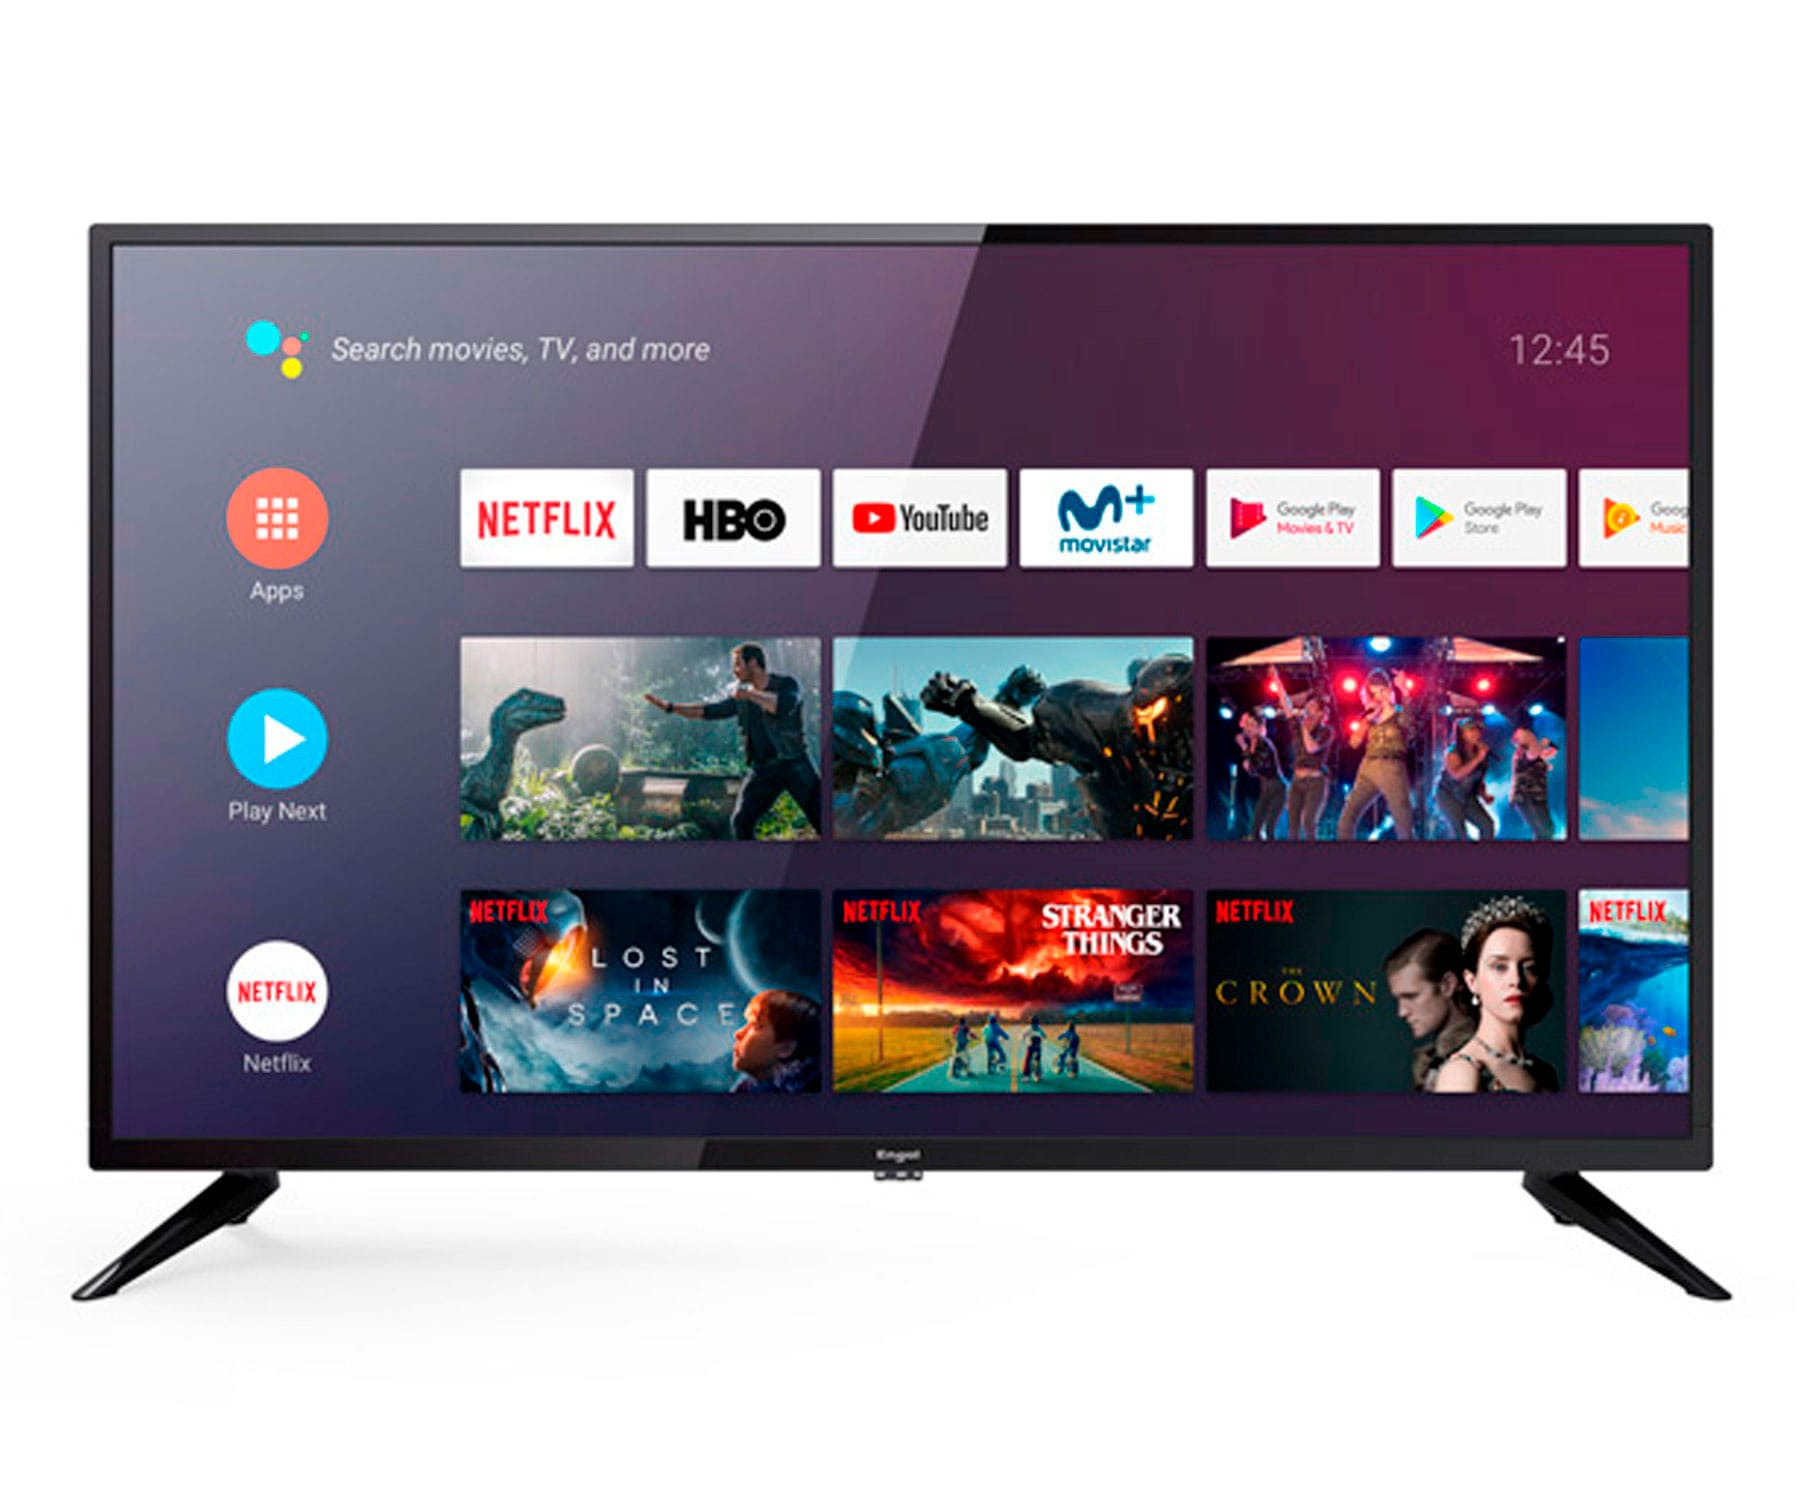 ENGEL 40LE4090ATV TELEVISOR 40'' IPS LED FULLHD WIFI HDMI USB ANDROID TV GOOGLE ASSISTANT CHROMECAST